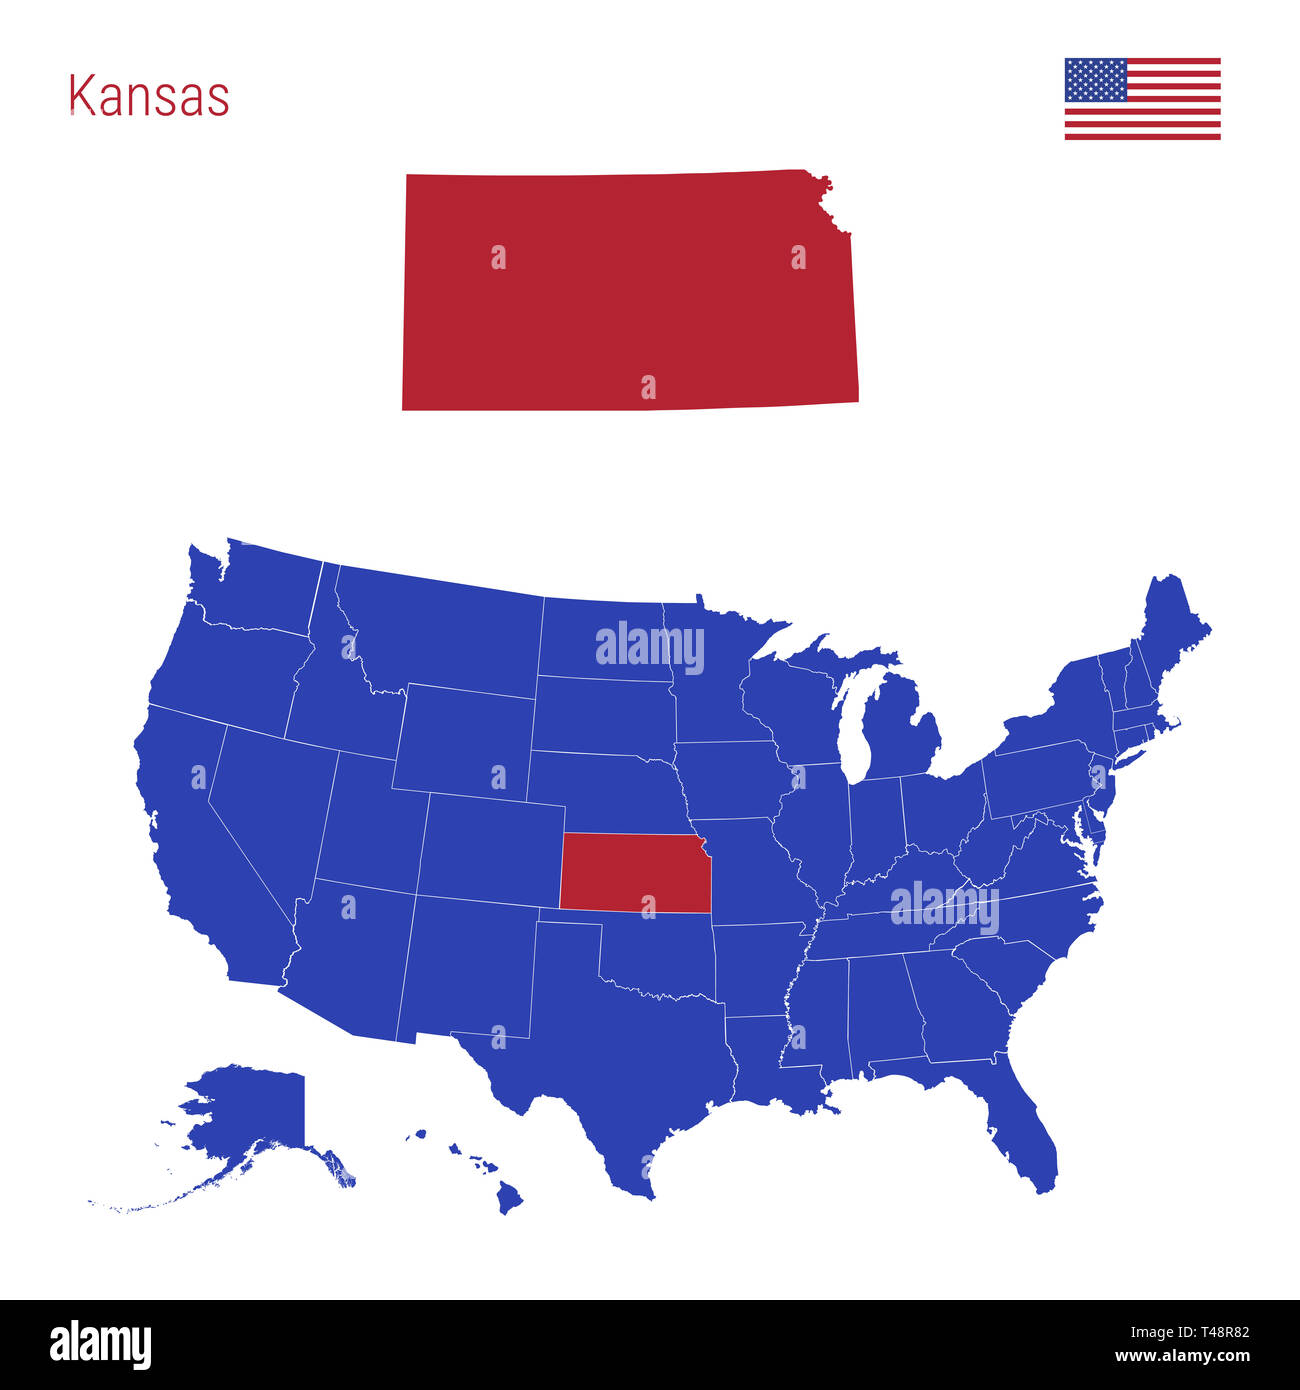 Kansas Map On The World on kansas on country map, kansas on state map, kansas economy map, kansas on the globe, kansas on america map, kansas on usa map,